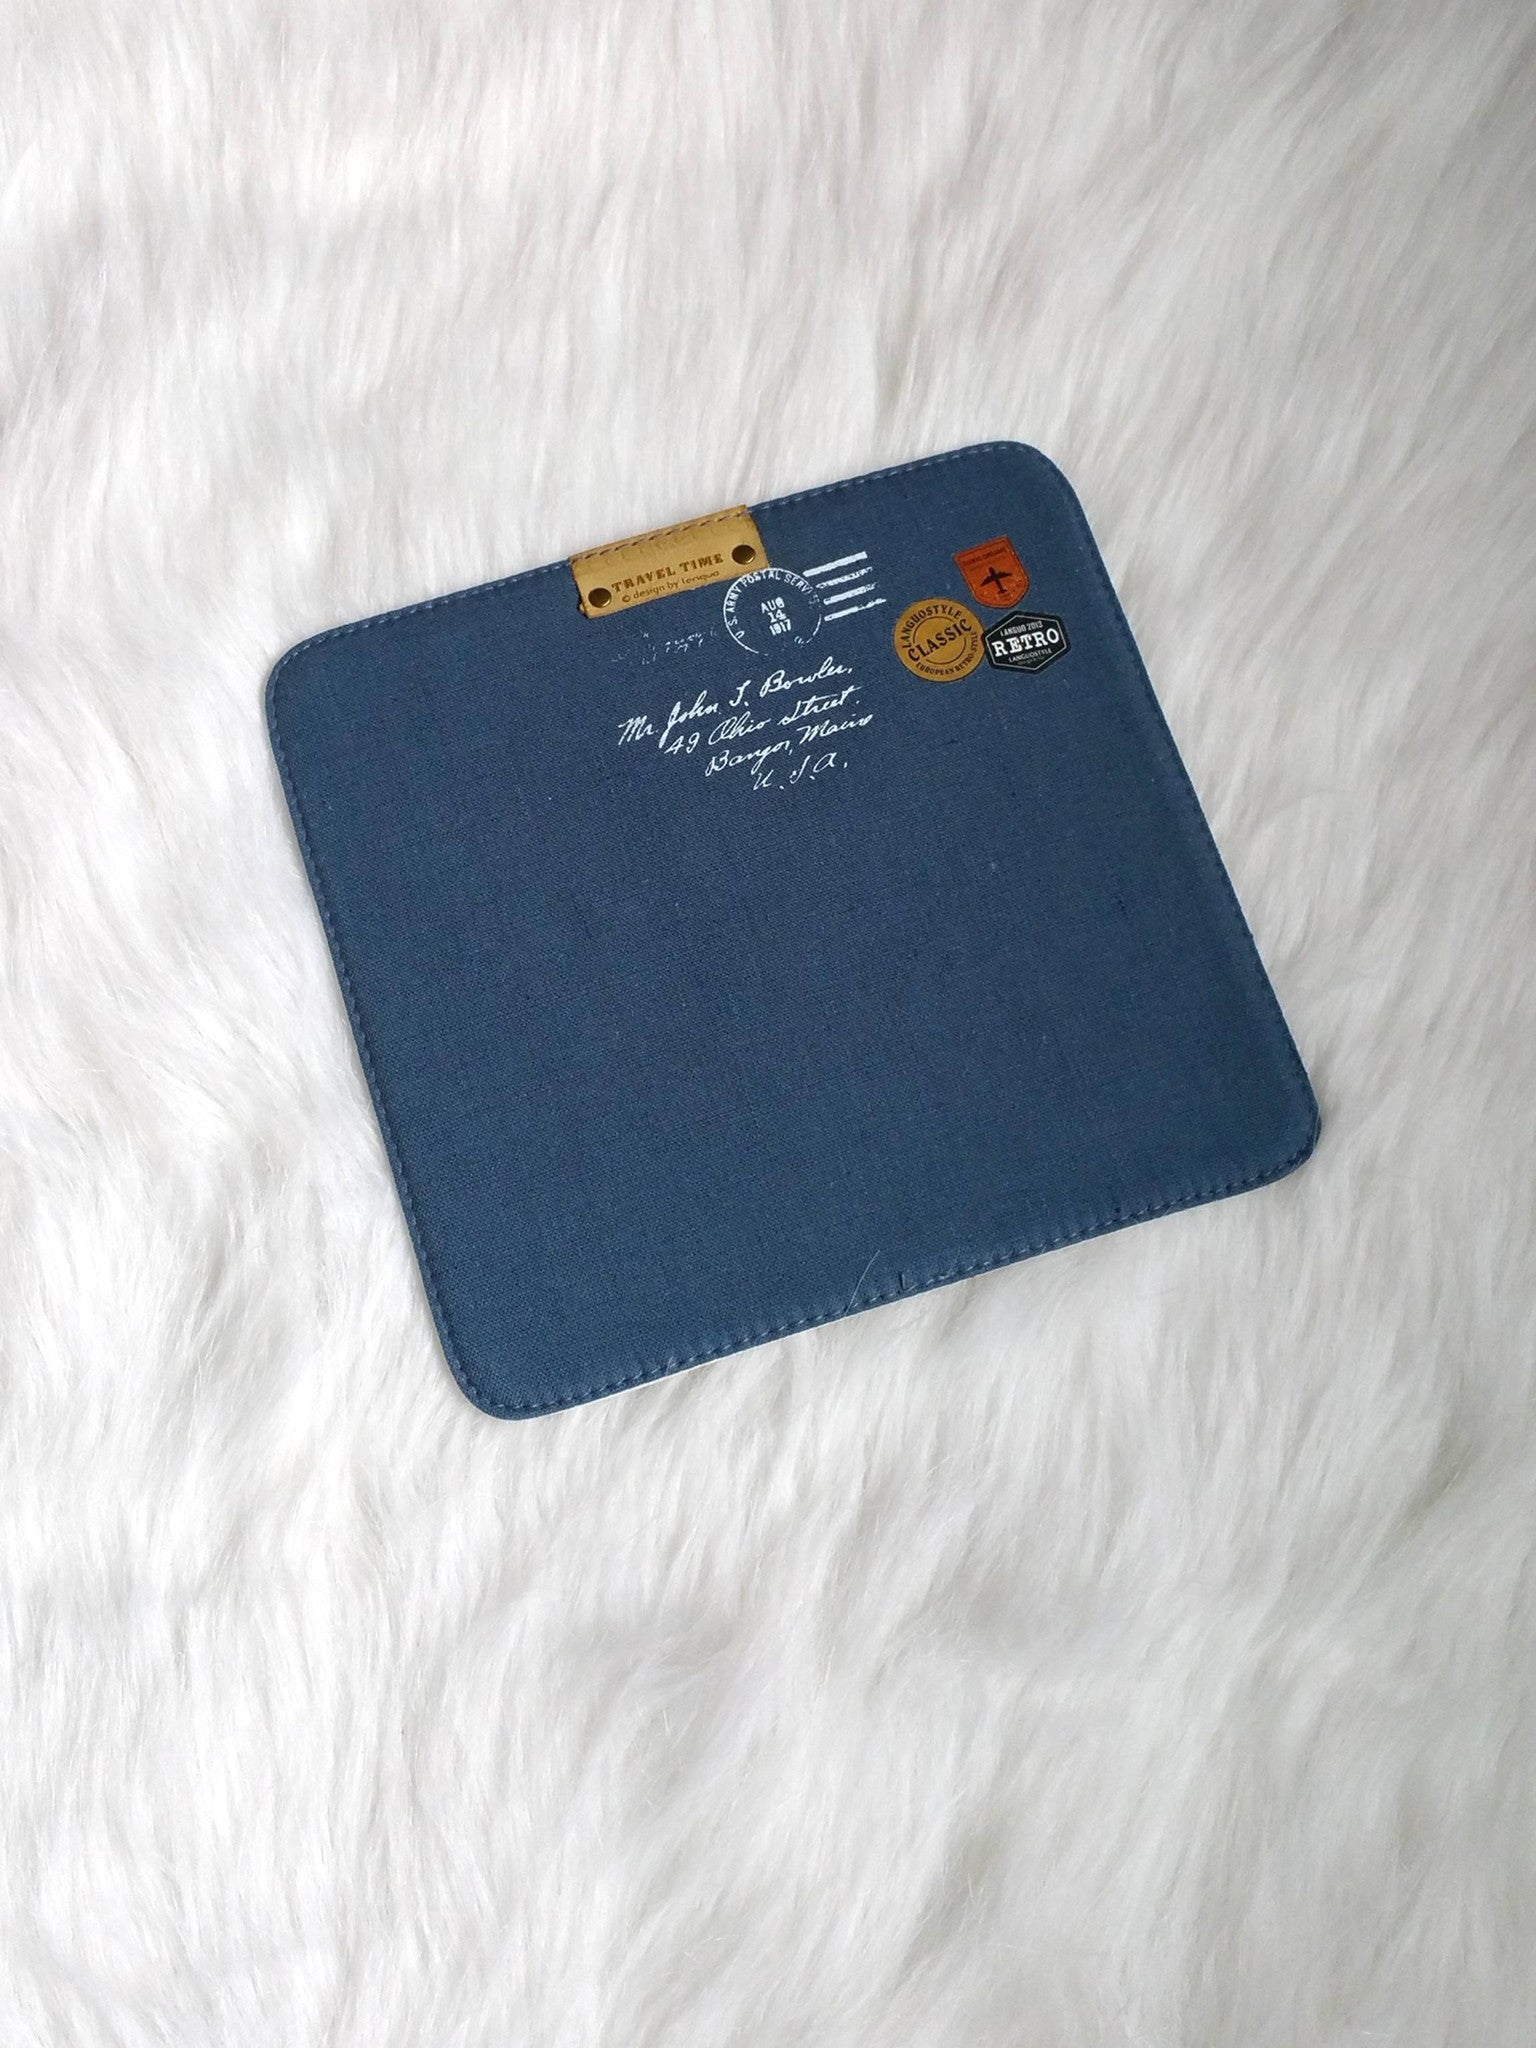 Blue Mouse Pads, Office Mouse Pads, Office Gifts, Co-worker Gifts